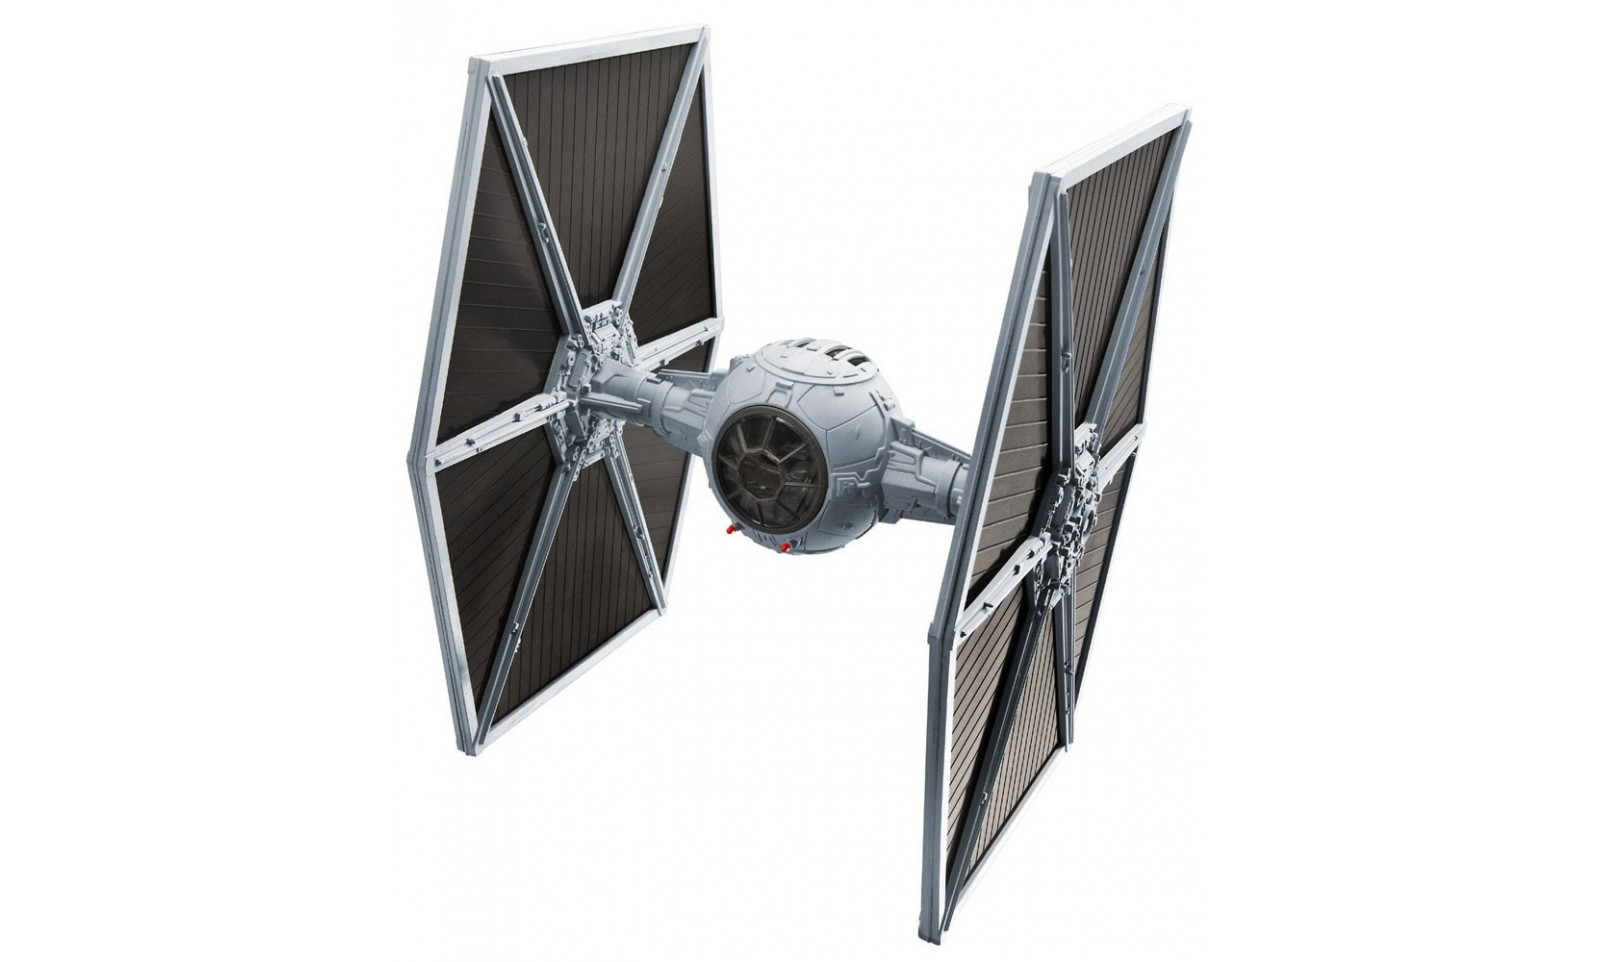 Star wars maquette vaisseau tie fighter 16 cm - Image vaisseau star wars ...